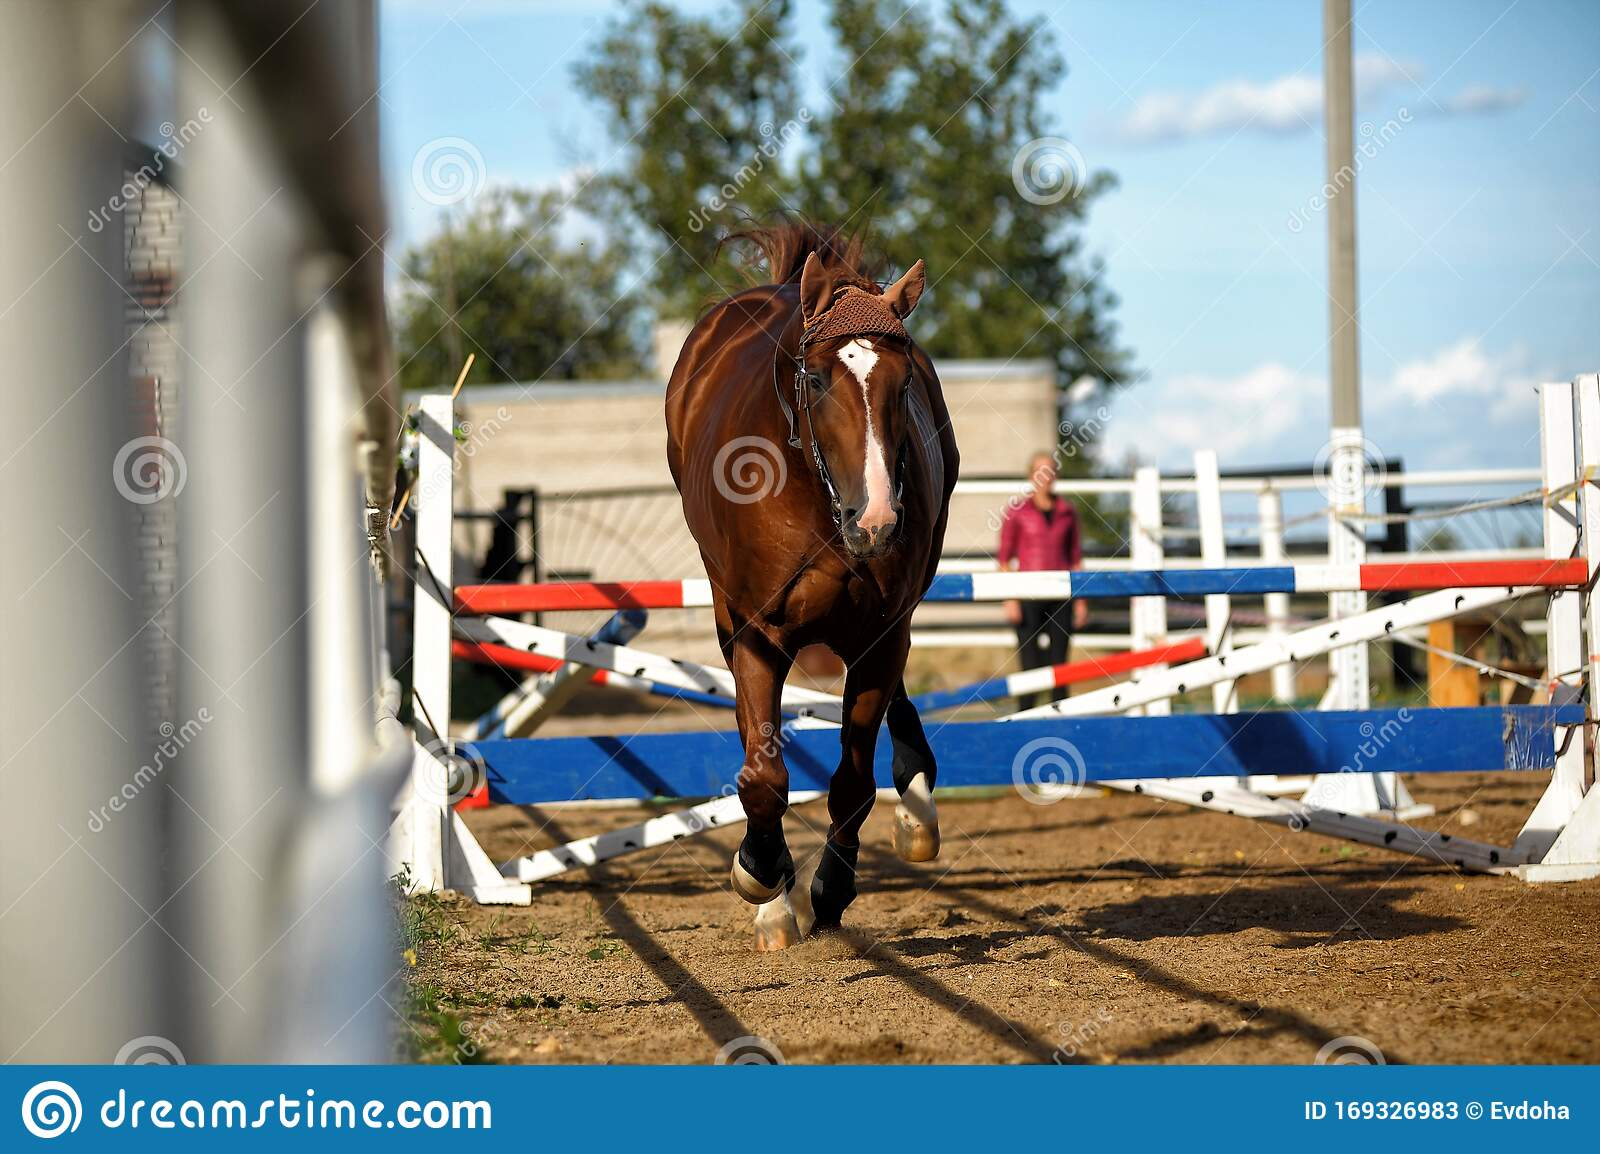 Brown Horse Jumps Over Obstacles In Training Editorial Stock Photo Image Of Farm Market 169326983